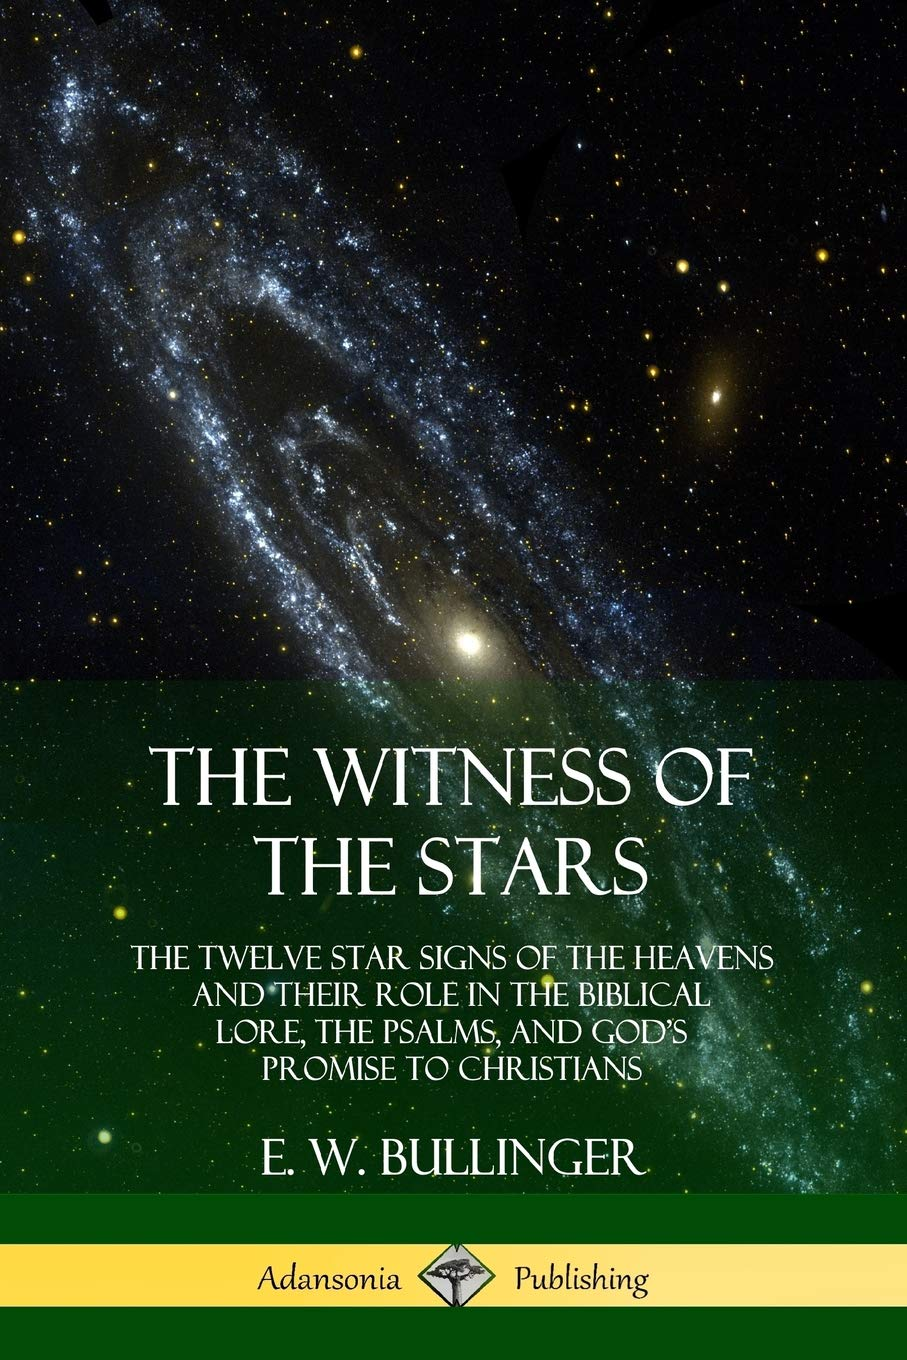 The Witness Of The Stars  The Twelve Star Signs Of The Heavens And Their Role In The Biblical Lore The Psalms And God's Promise To Christians